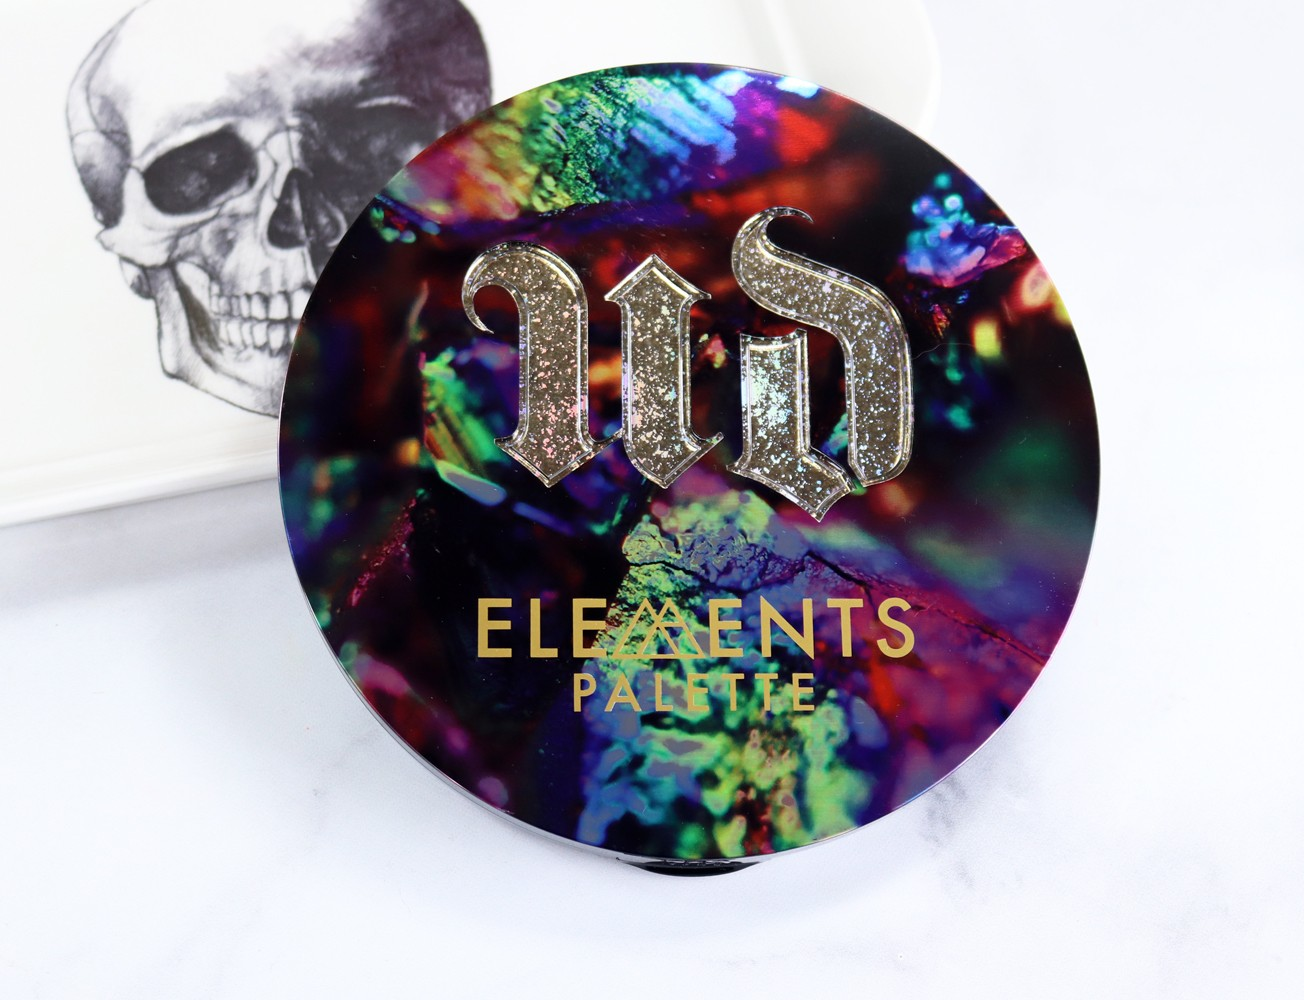 Urban Decay Elements Palette Review and Swatches featured by popular Los Angeles cruelty free beauty blogger My Beauty Bunny